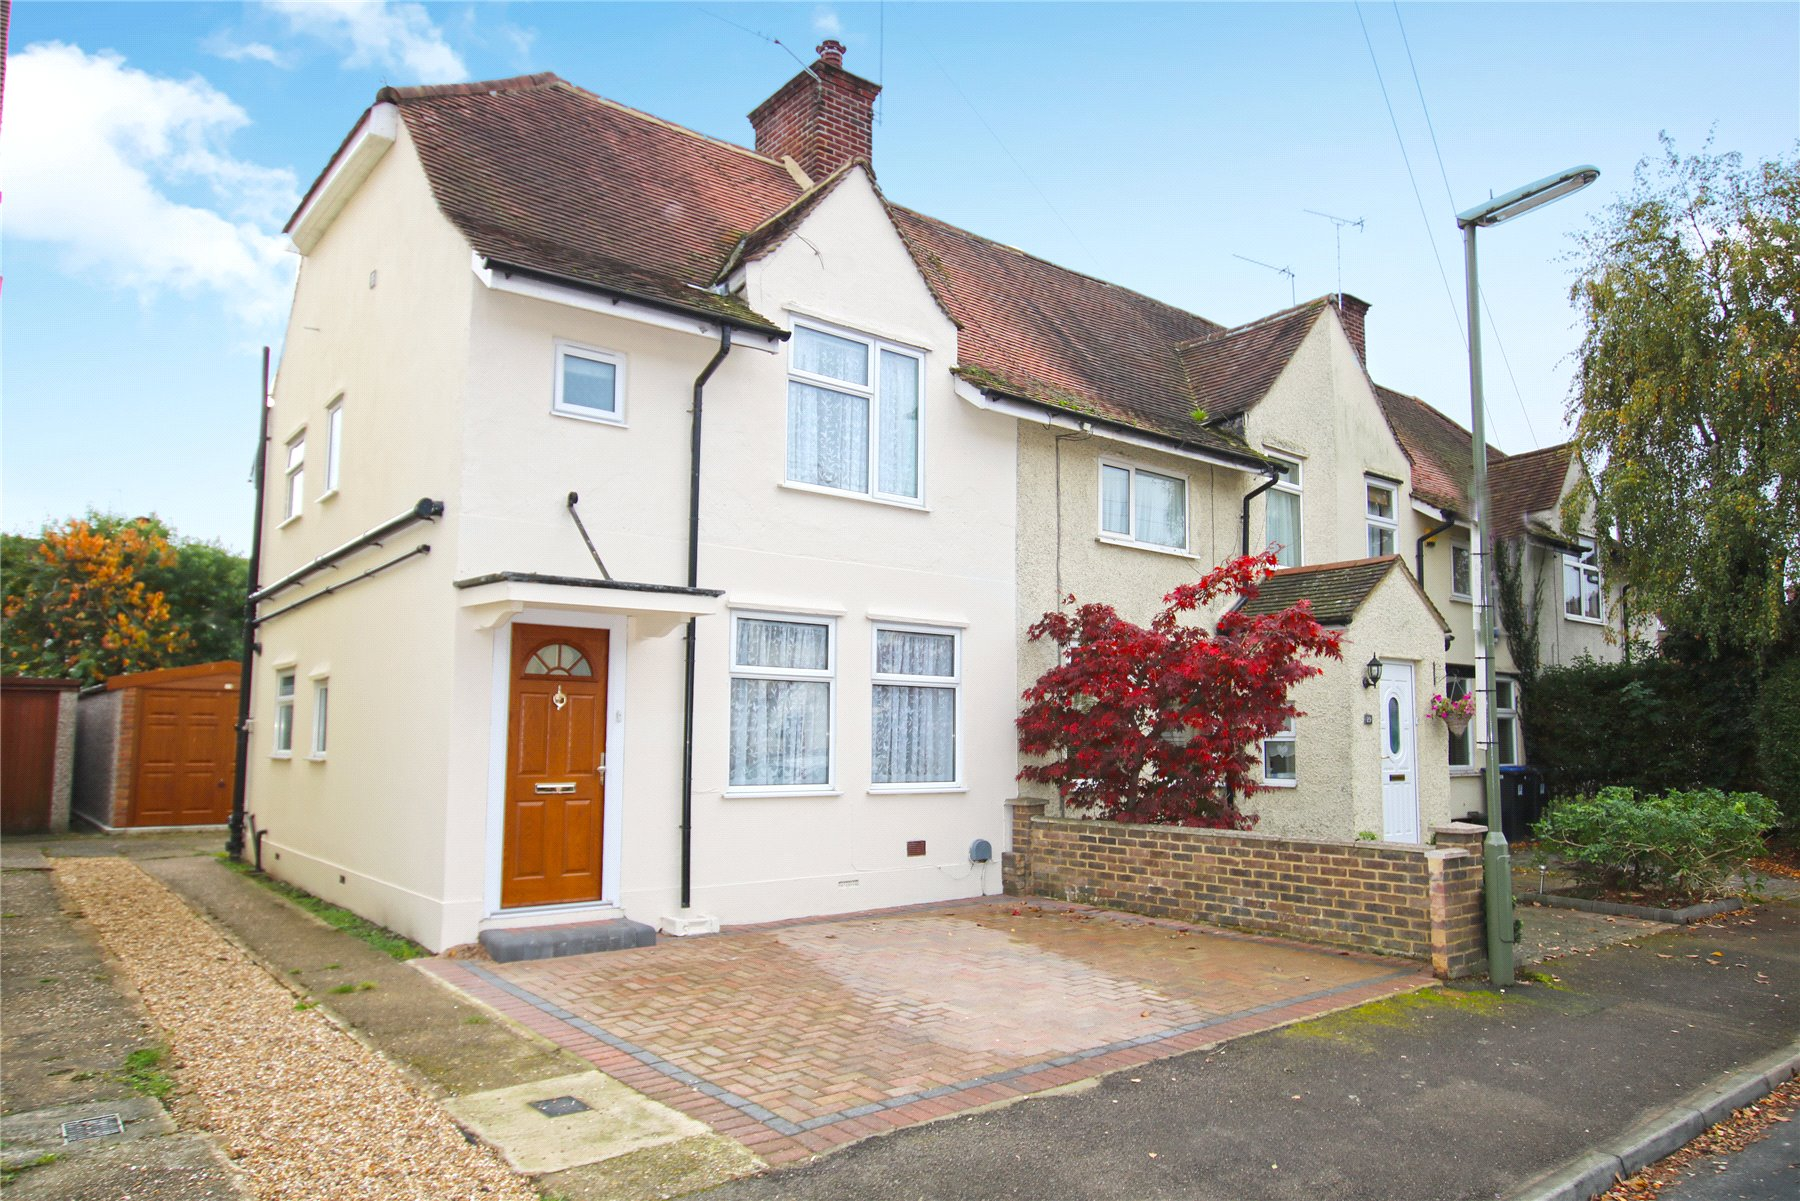 3 Bedrooms End Of Terrace House for sale in Dawson Road, Byfleet, Surrey, KT14